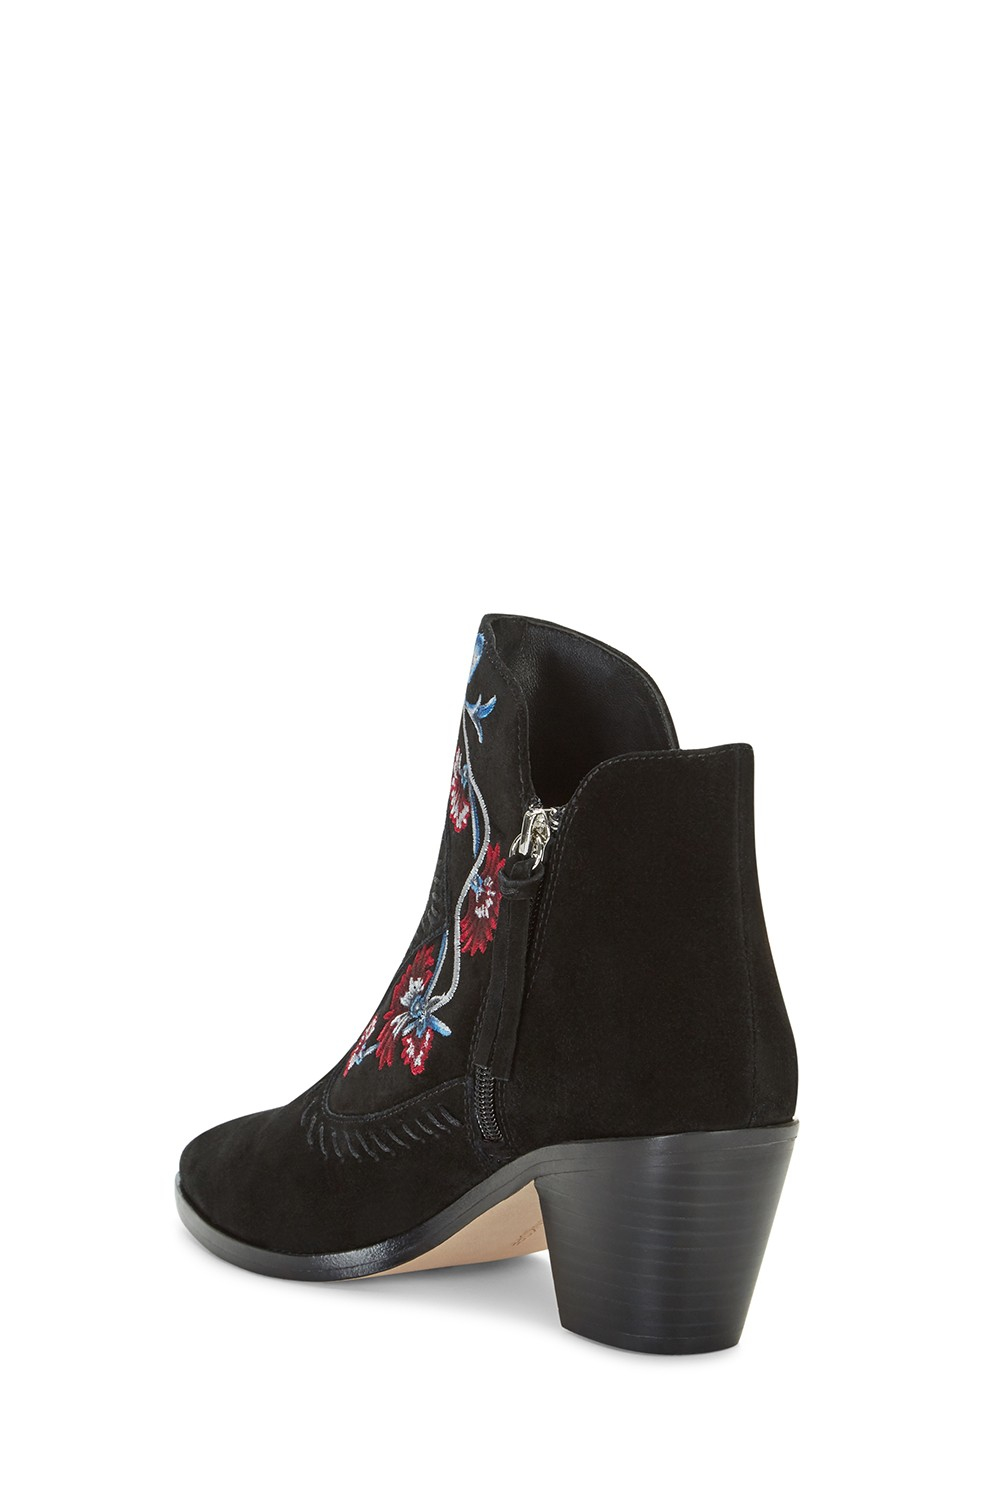 Rebecca Minkoff Suede Lulu Embroidery Bootie in Black